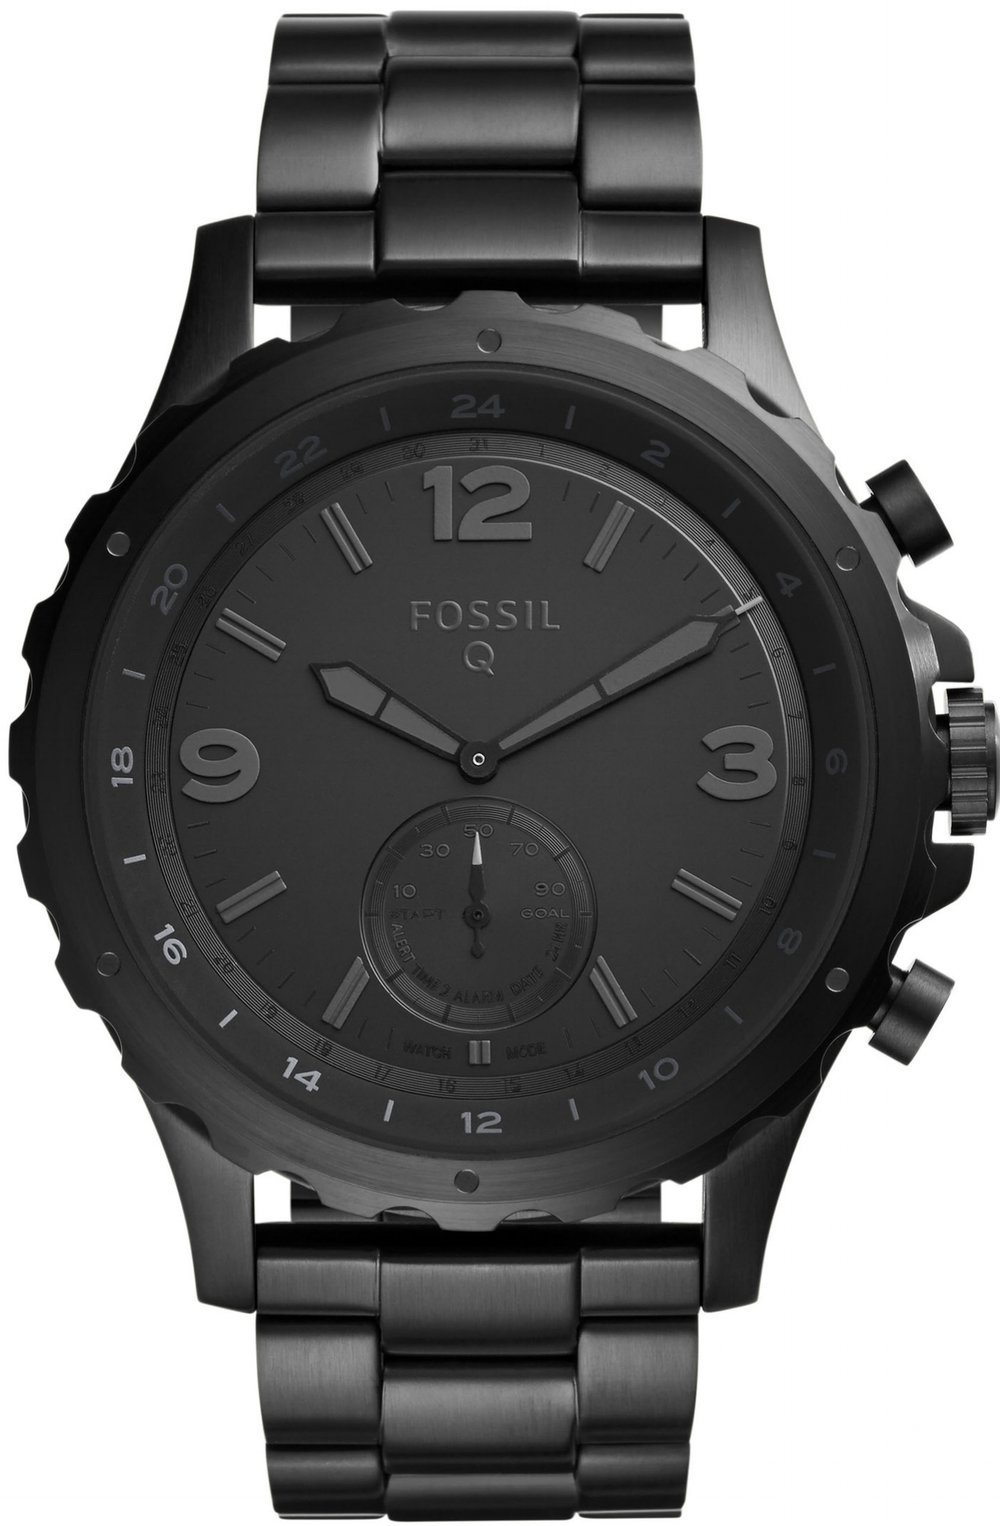 Fossil Q Nate Hybrid Black Stainless Steel Smartwatch, $215